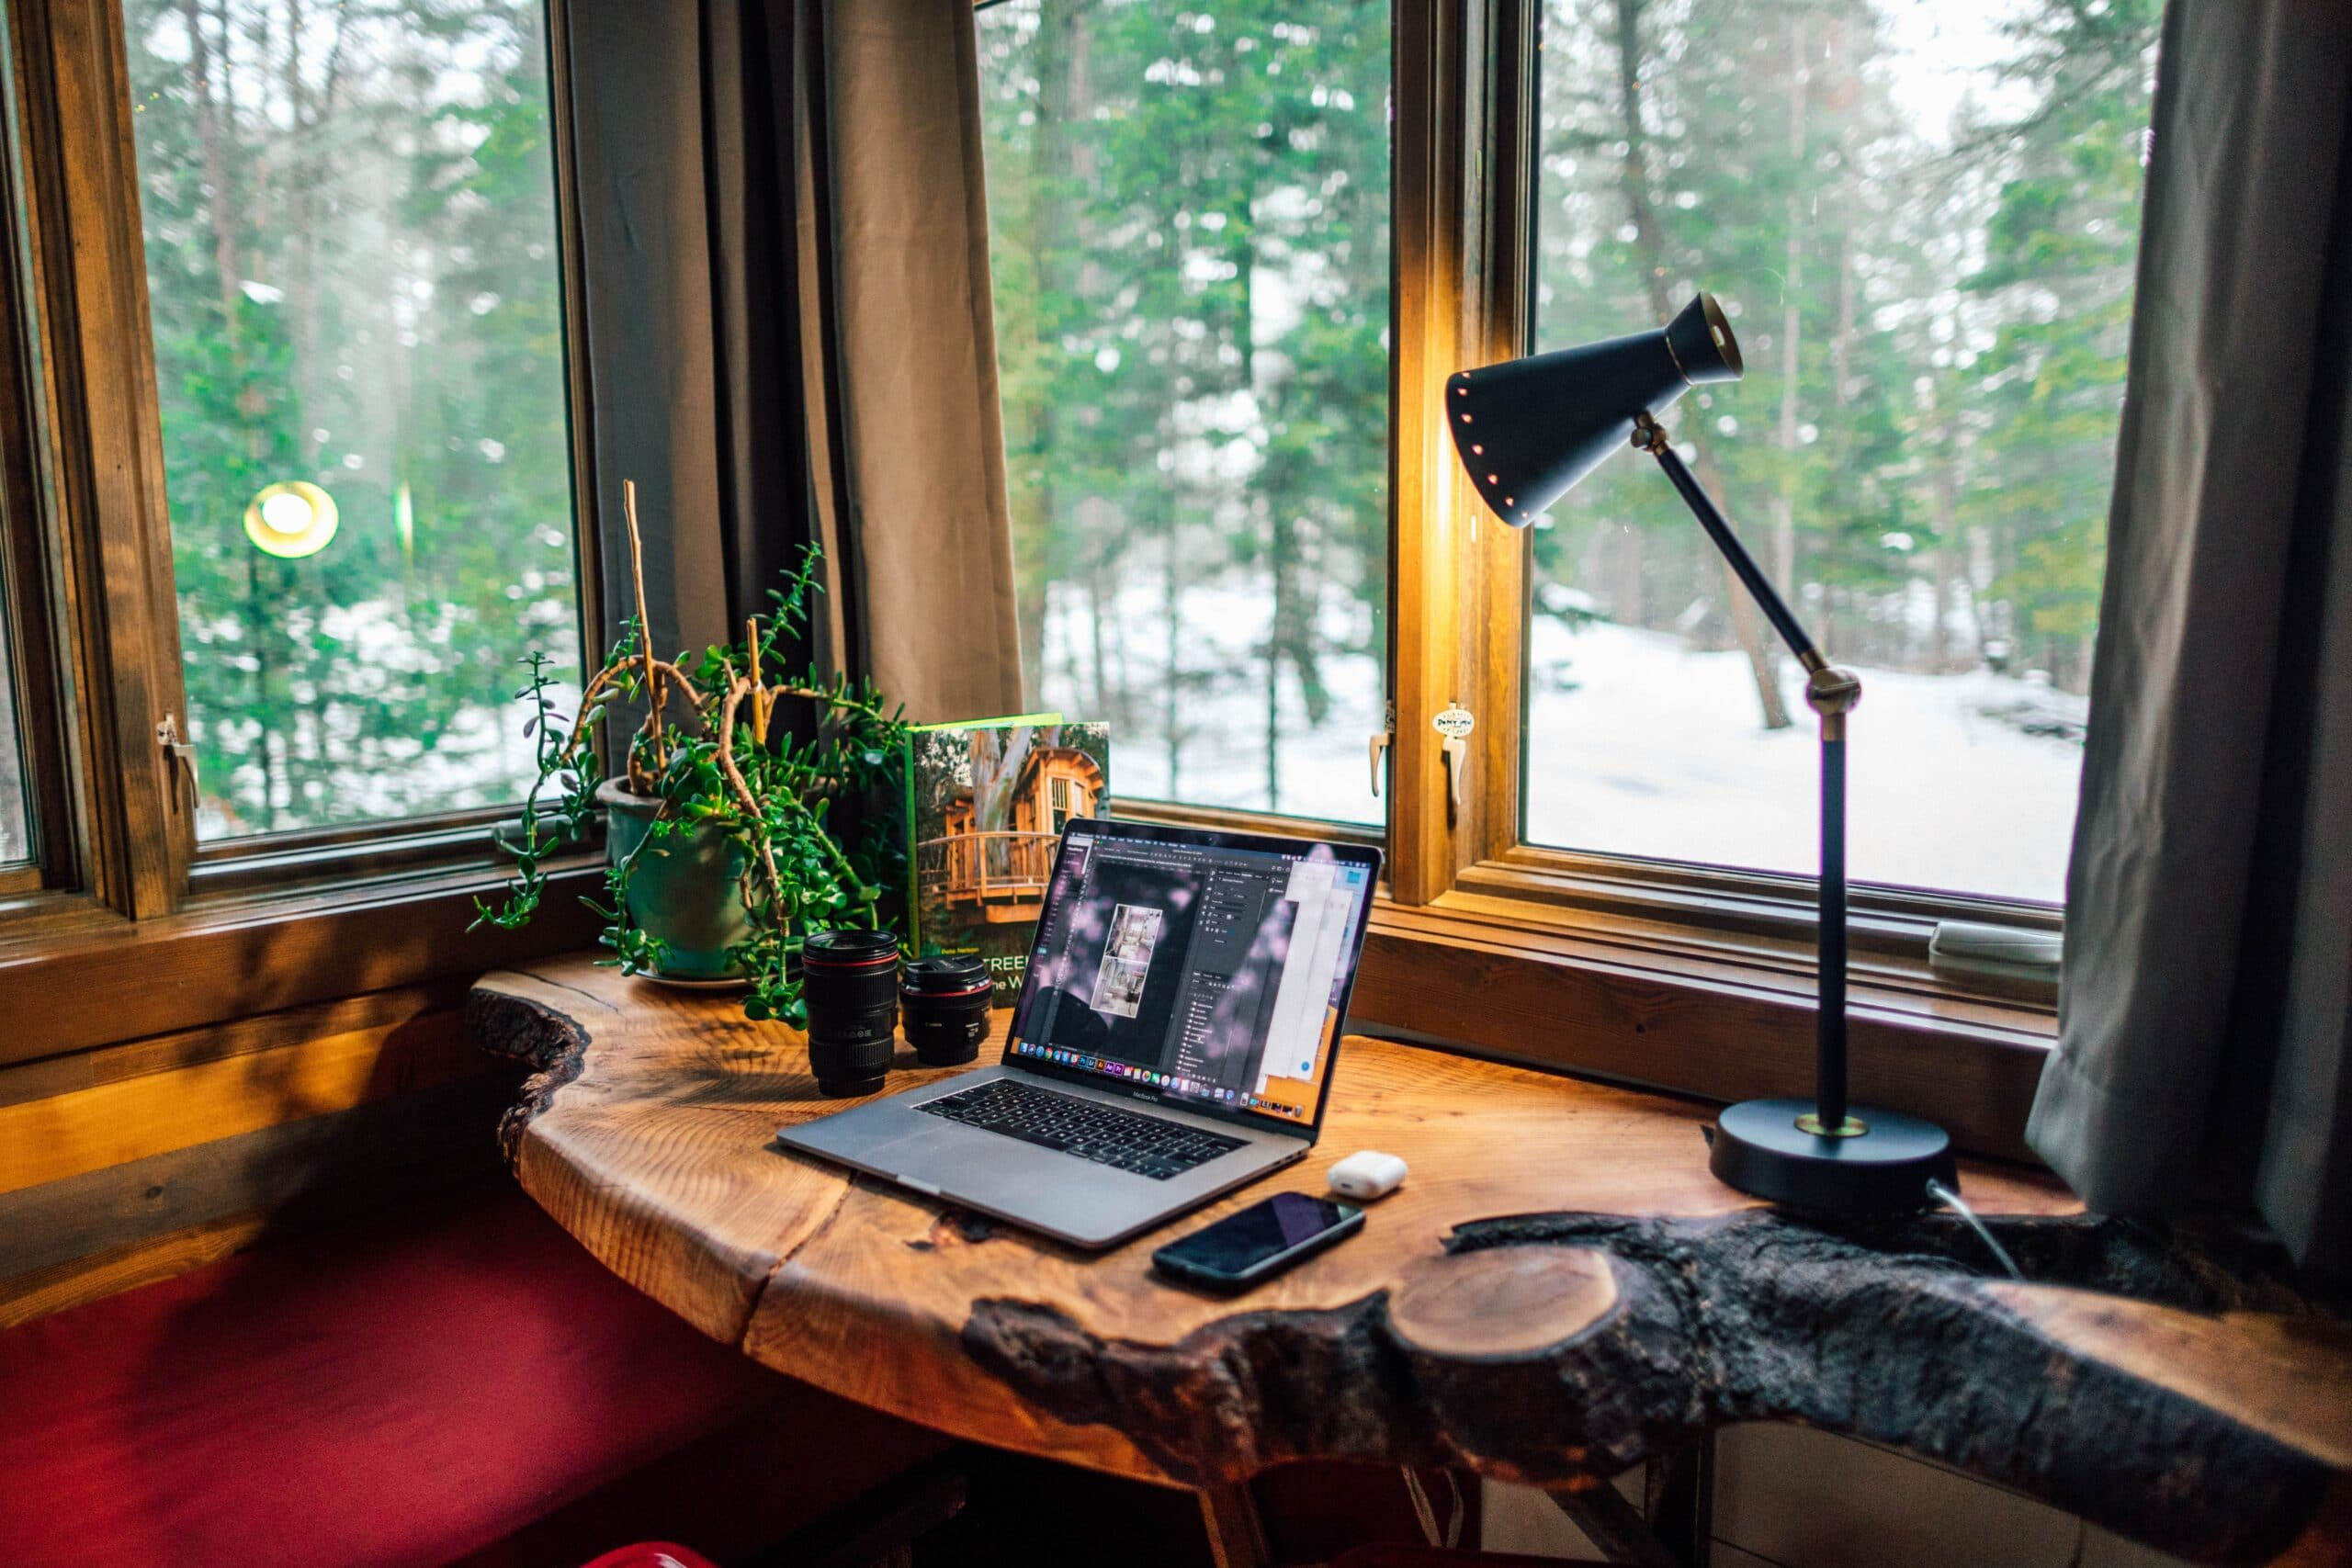 Learn how to be productive when working from home—not just during the pandemic, but in general. It pays to know how to work effectively in this situation.